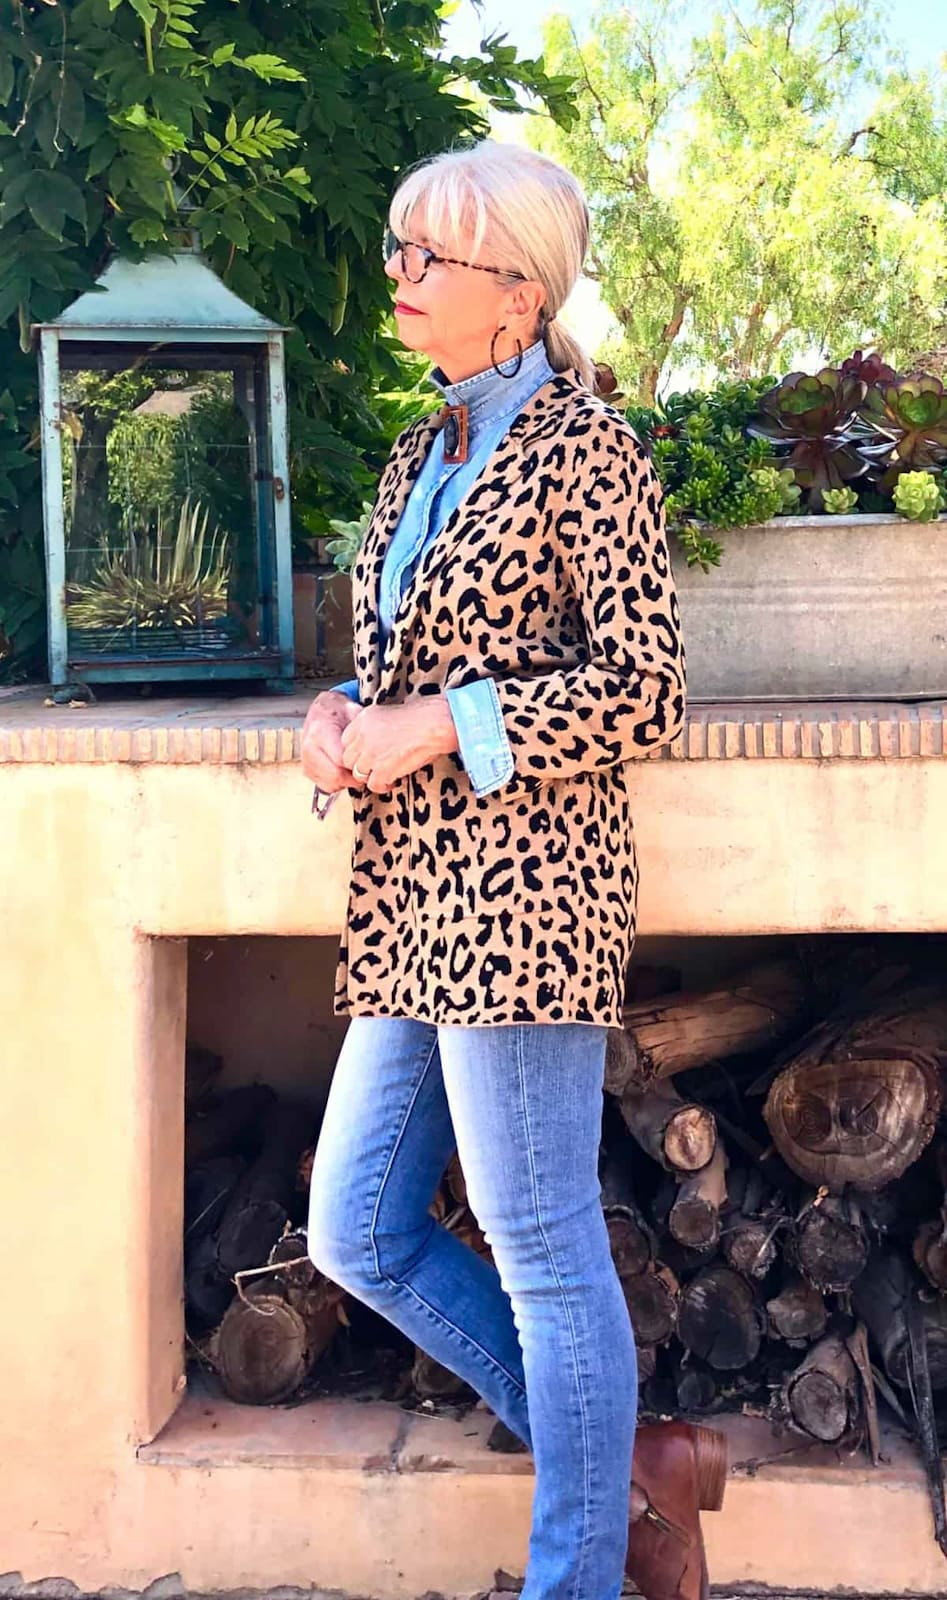 cindy hattersley in j crew sophie jacket and chambray shirt